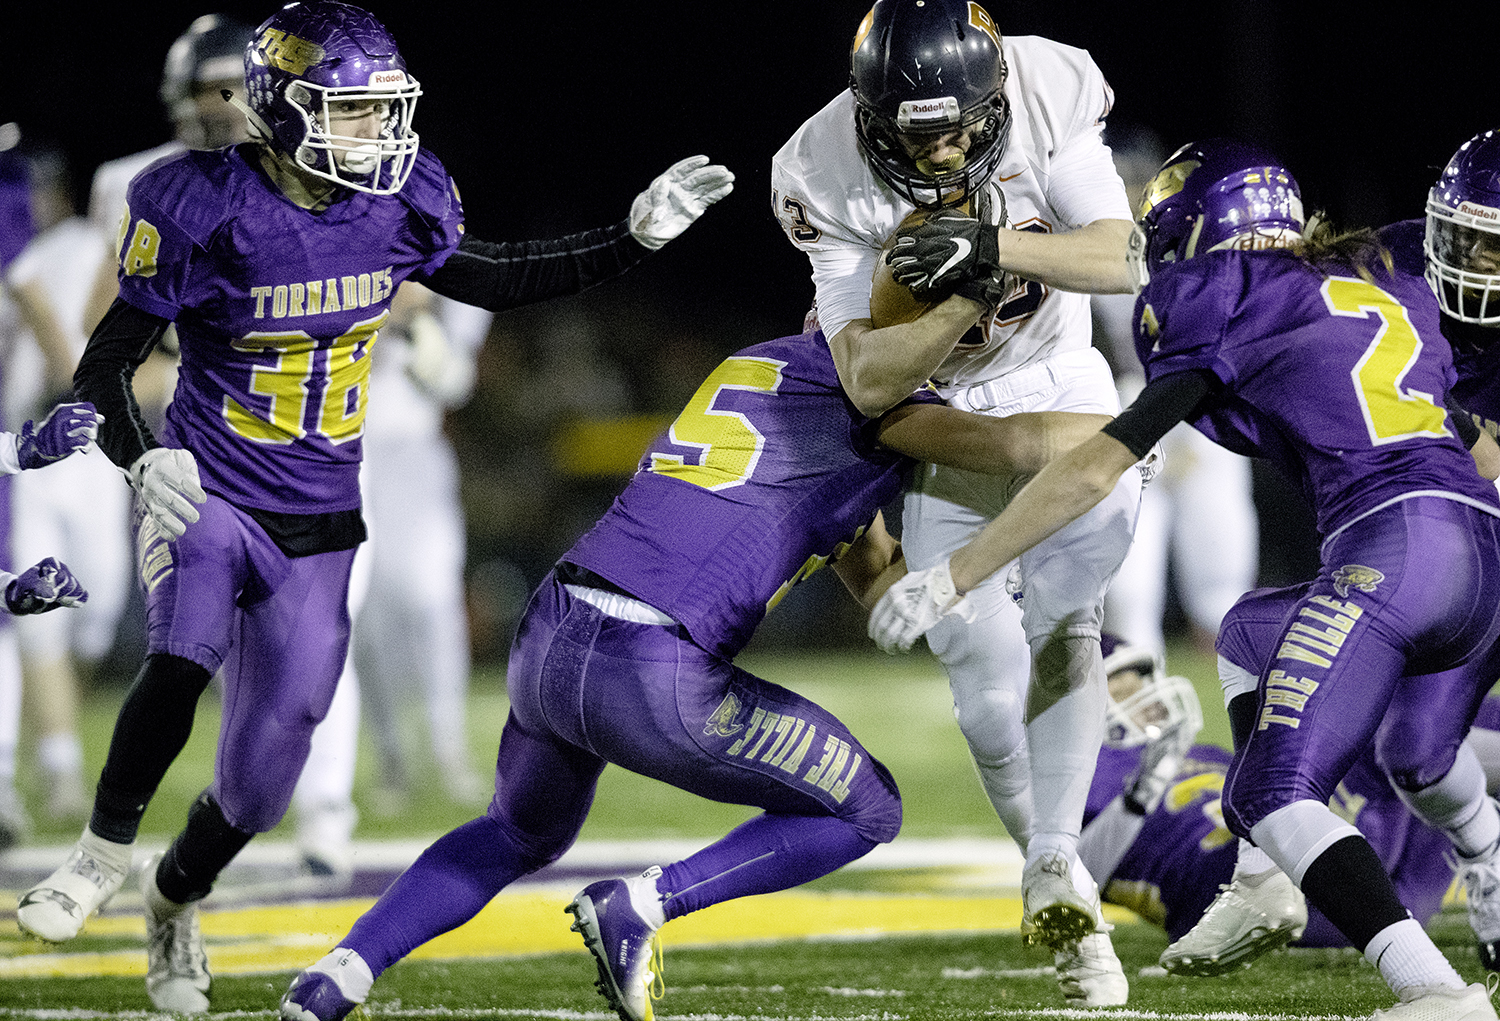 Rochester's Jacob DuRocher plows into the Taylorville defense during the Class 4A quarterfinals in Taylorville Saturday, Nov. 10, 2018. [Ted Schurter/The State Journal-Register]